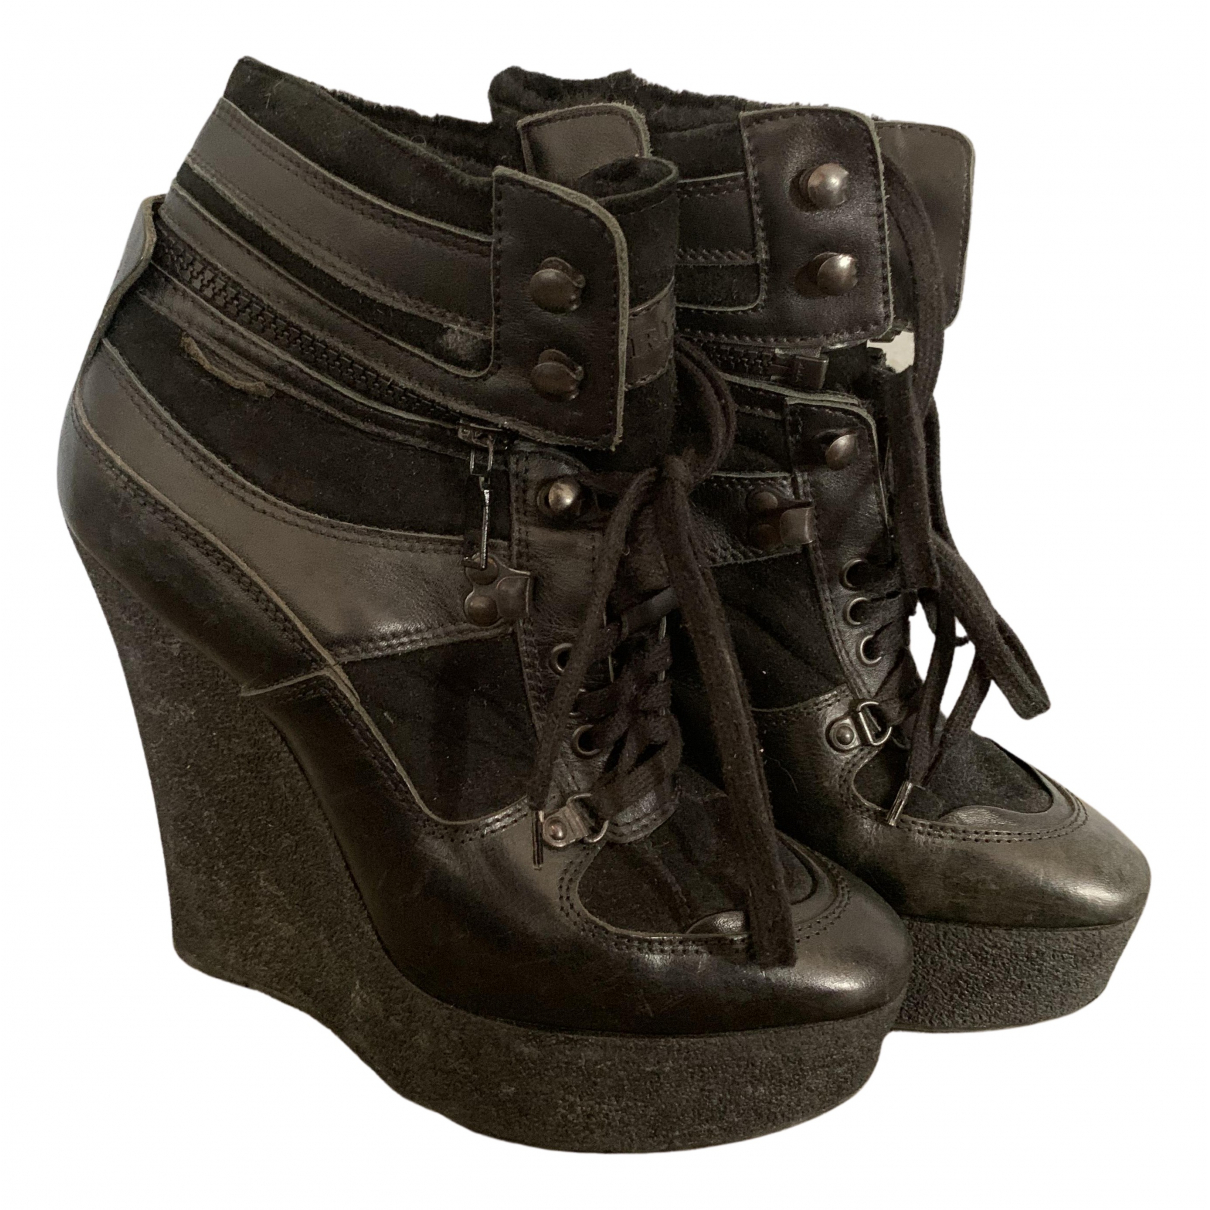 Burberry N Black Leather Ankle boots for Women 39 EU